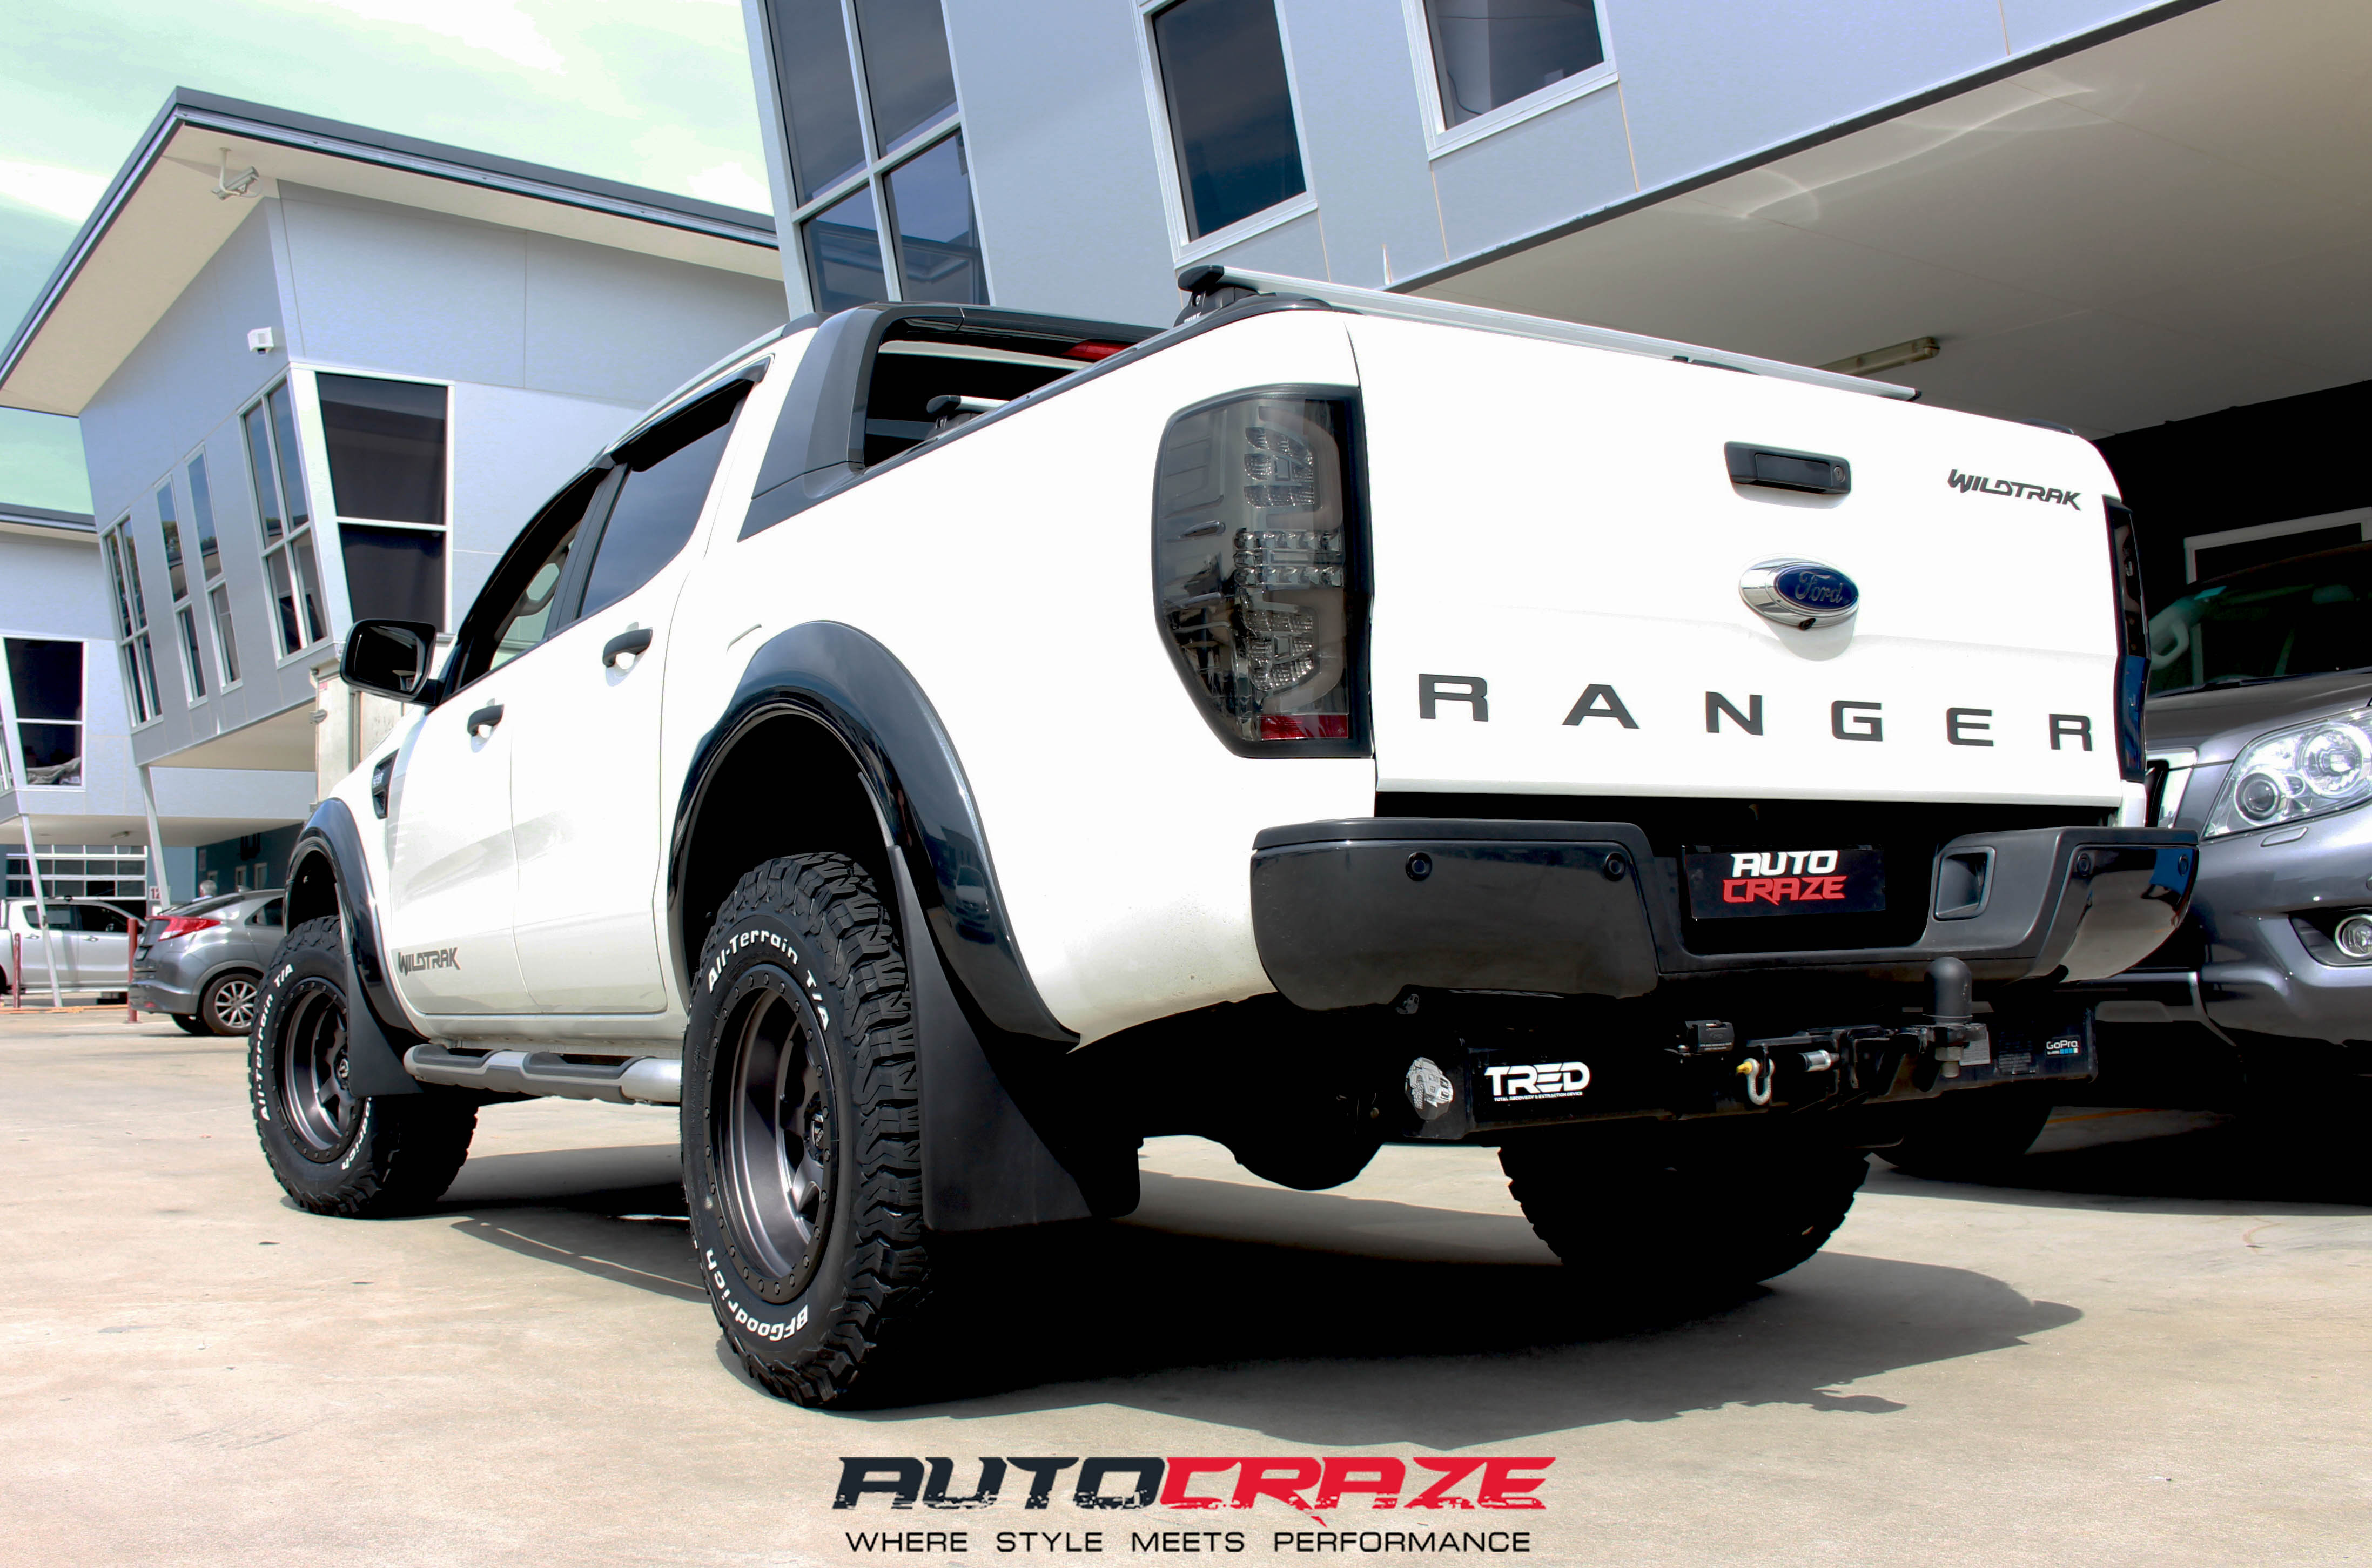 Ford Ranger Wheels Size Buy Rims And Tyres For Sale Oem Audi Database Autocraze